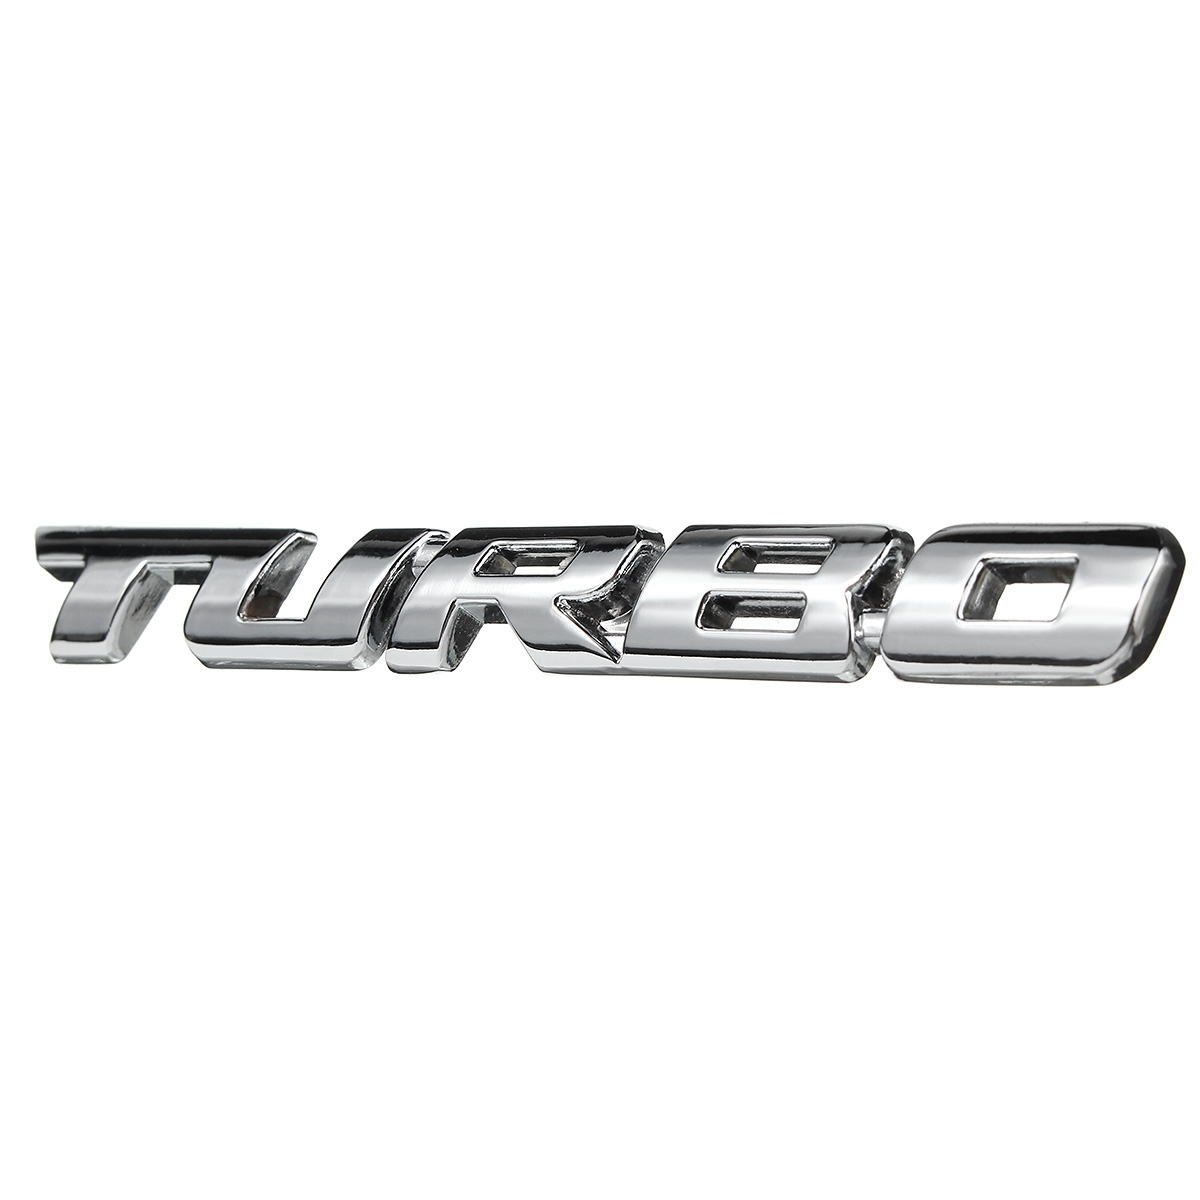 Turbo 3D Metal Car Decals Lettering Badge Sticker for Auto Body Rear Tailgate